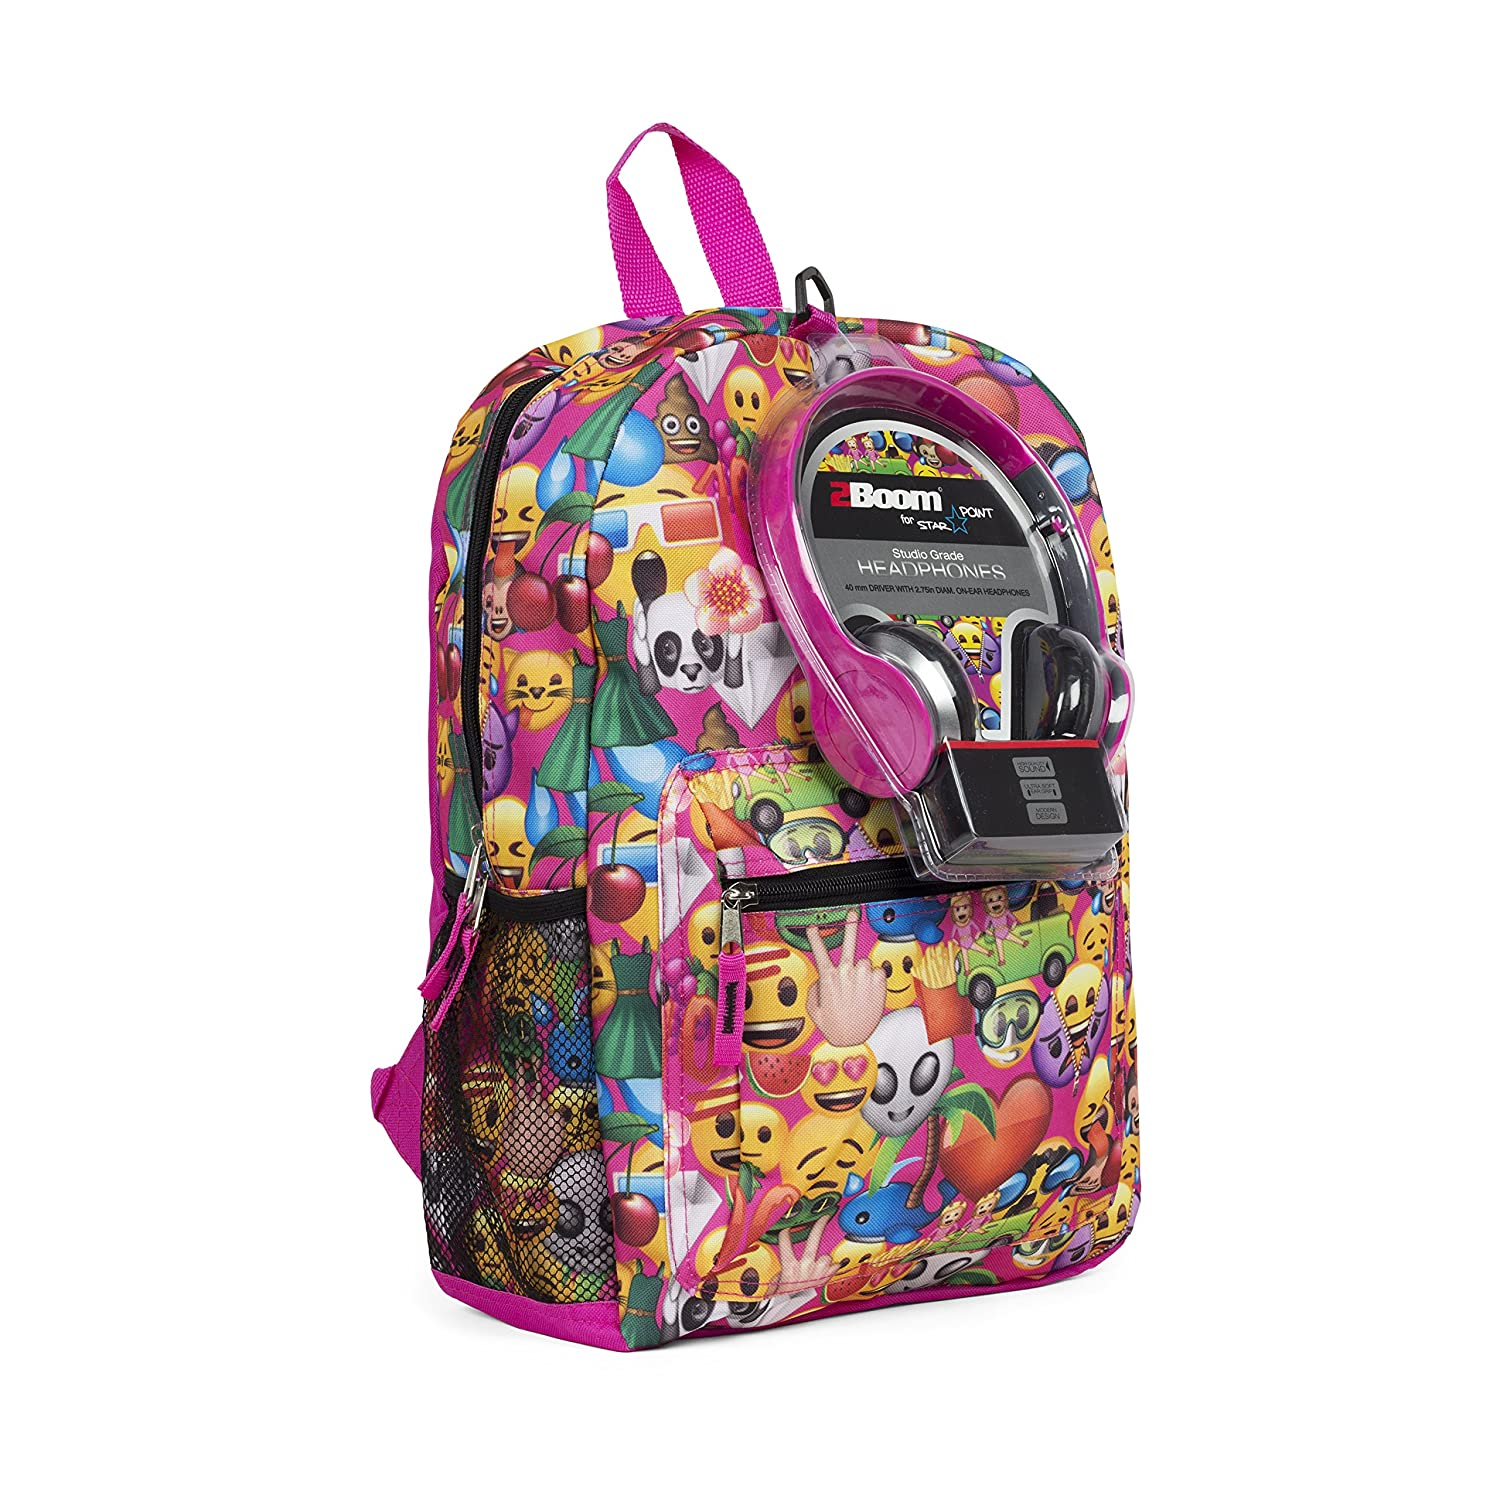 Emoji 17 Inch Smiley Faces Backpack with Headphones KAC9885801